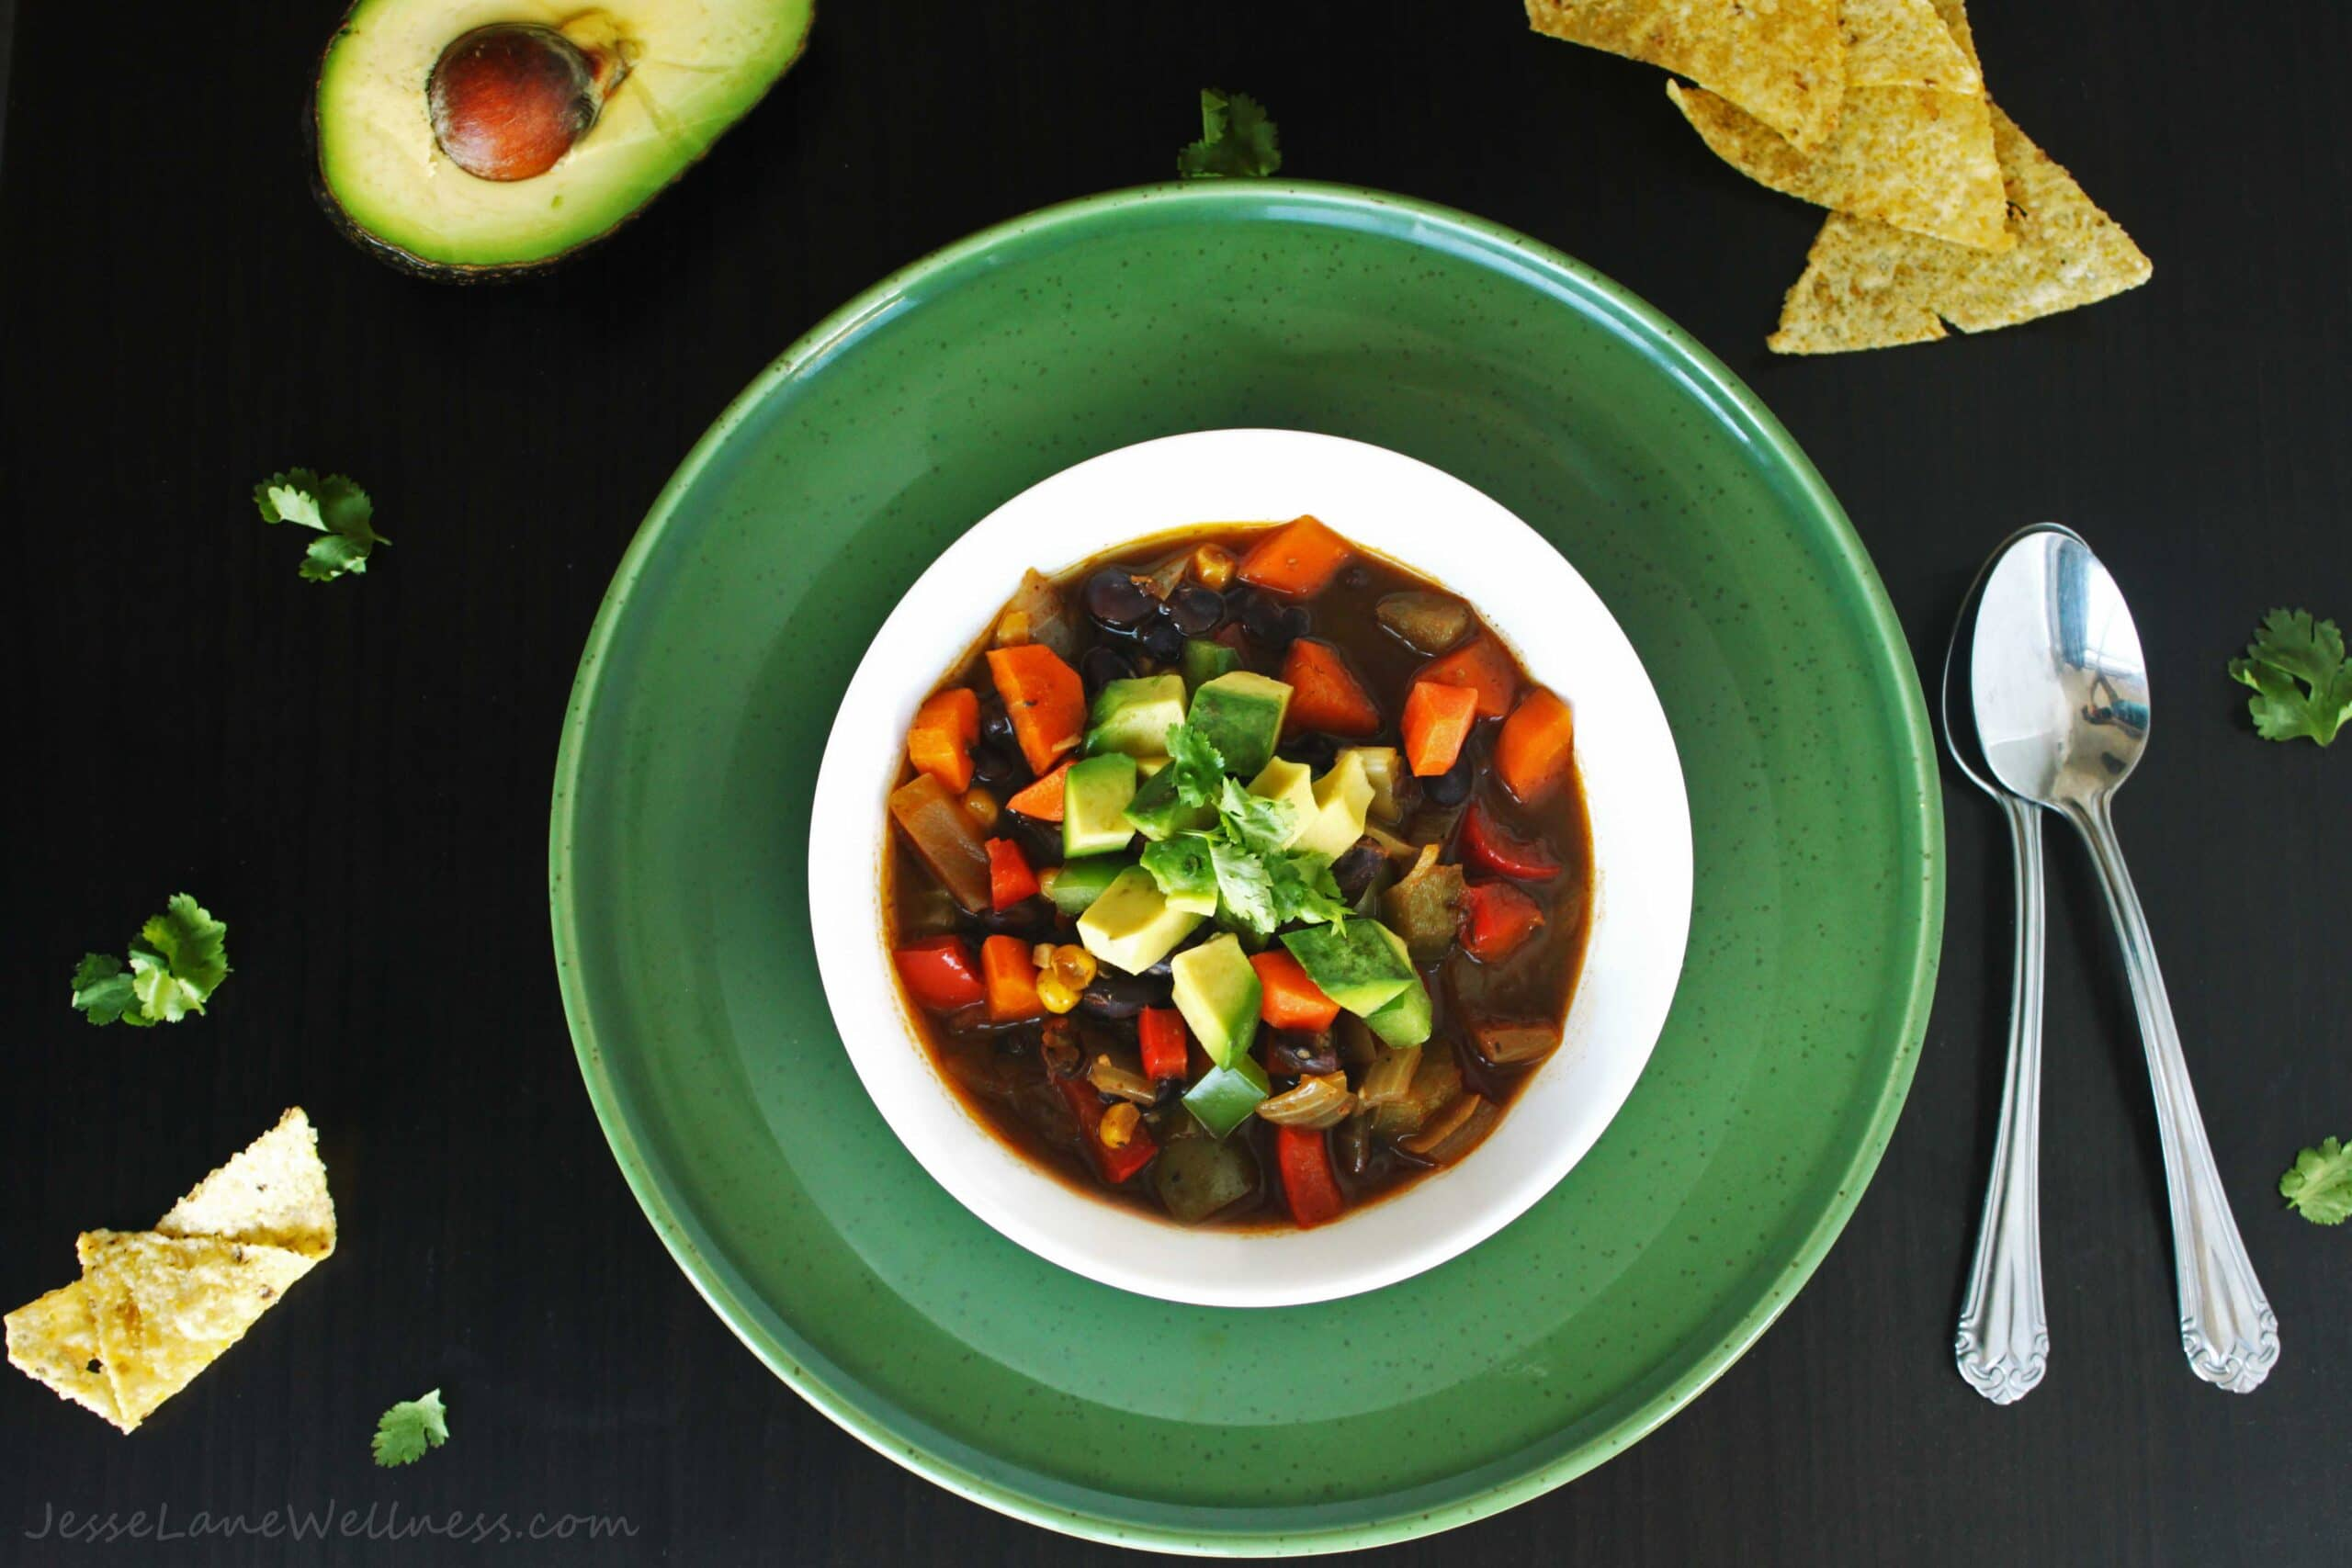 Spicy Black Bean Soup by @jesselwellness #recipe #vegetarian